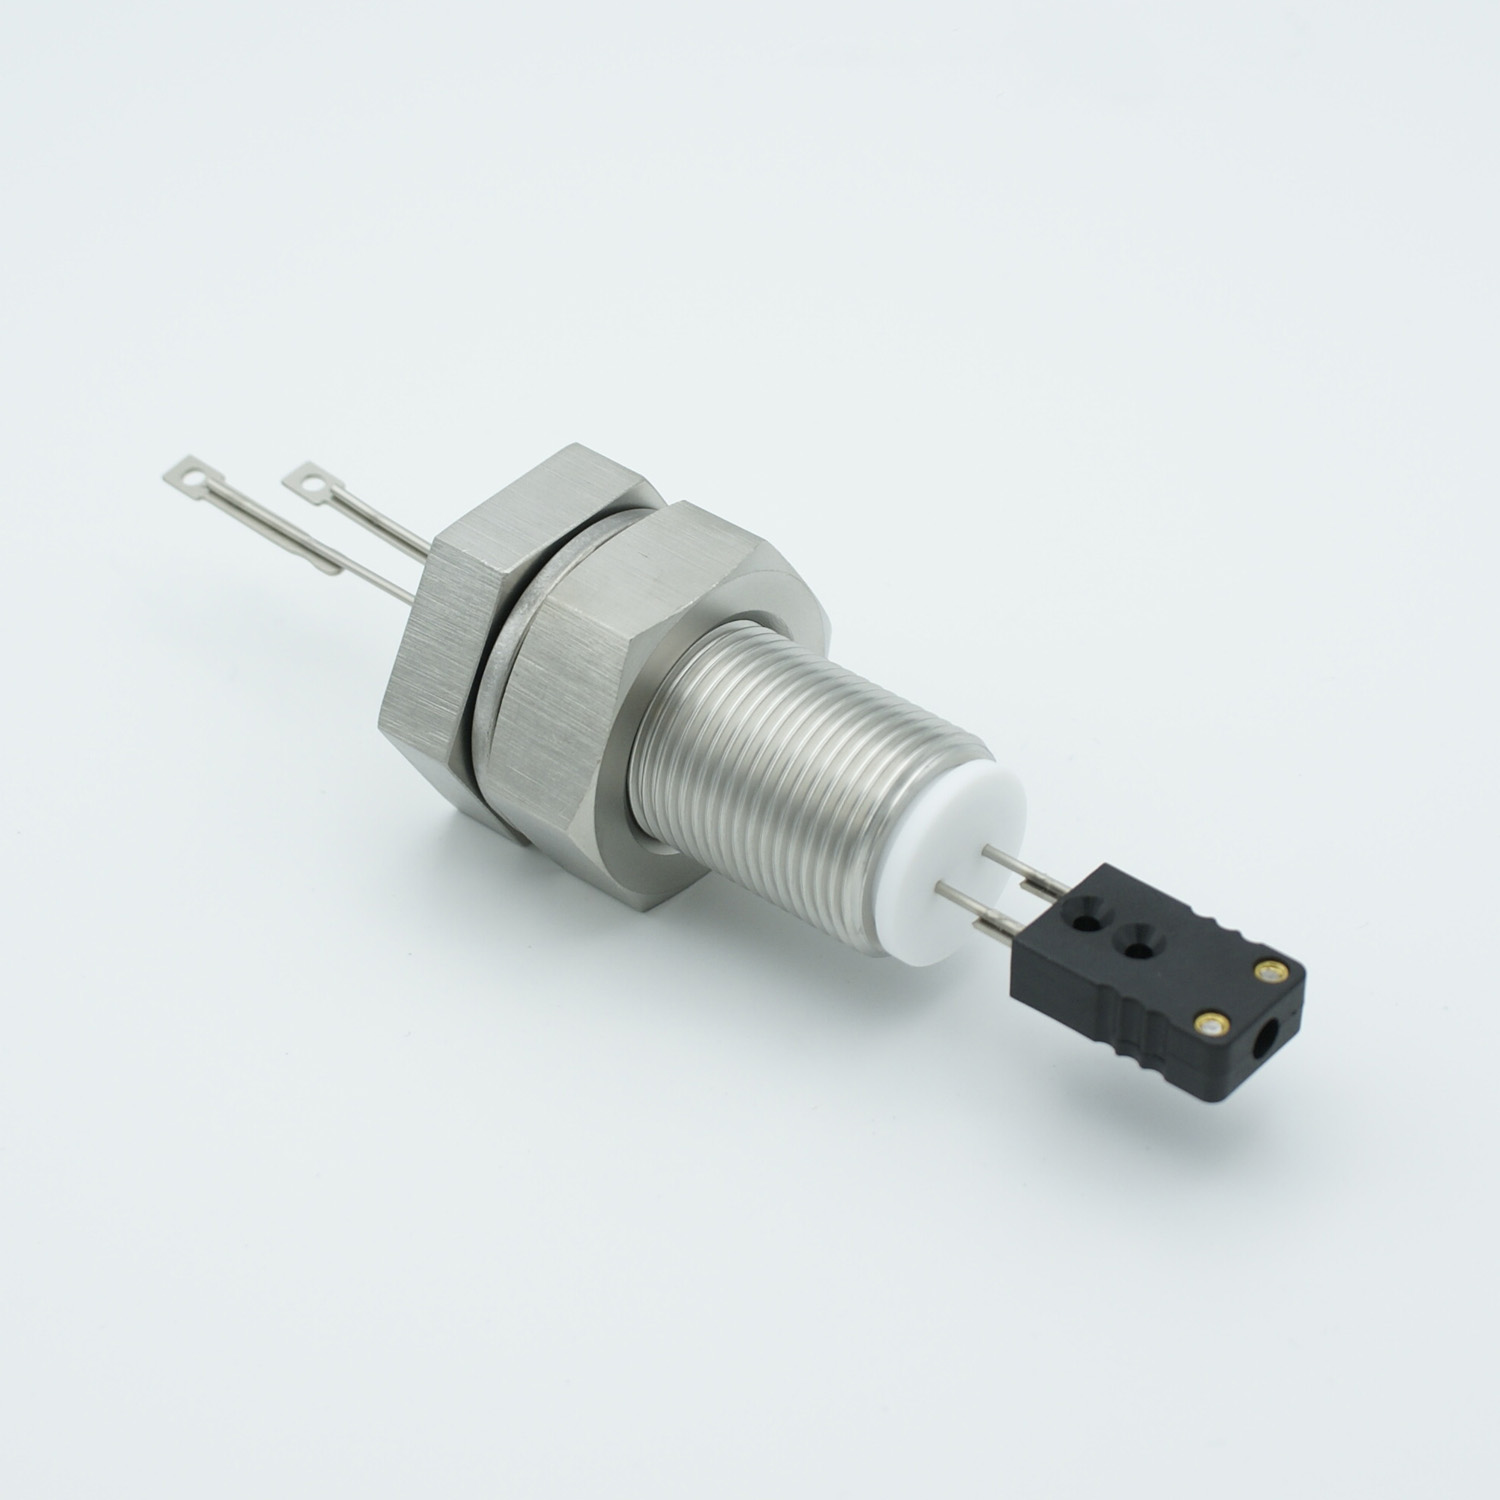 1 pair Thermocouple type-J feedthrough with both side connectors included, base plate fitting